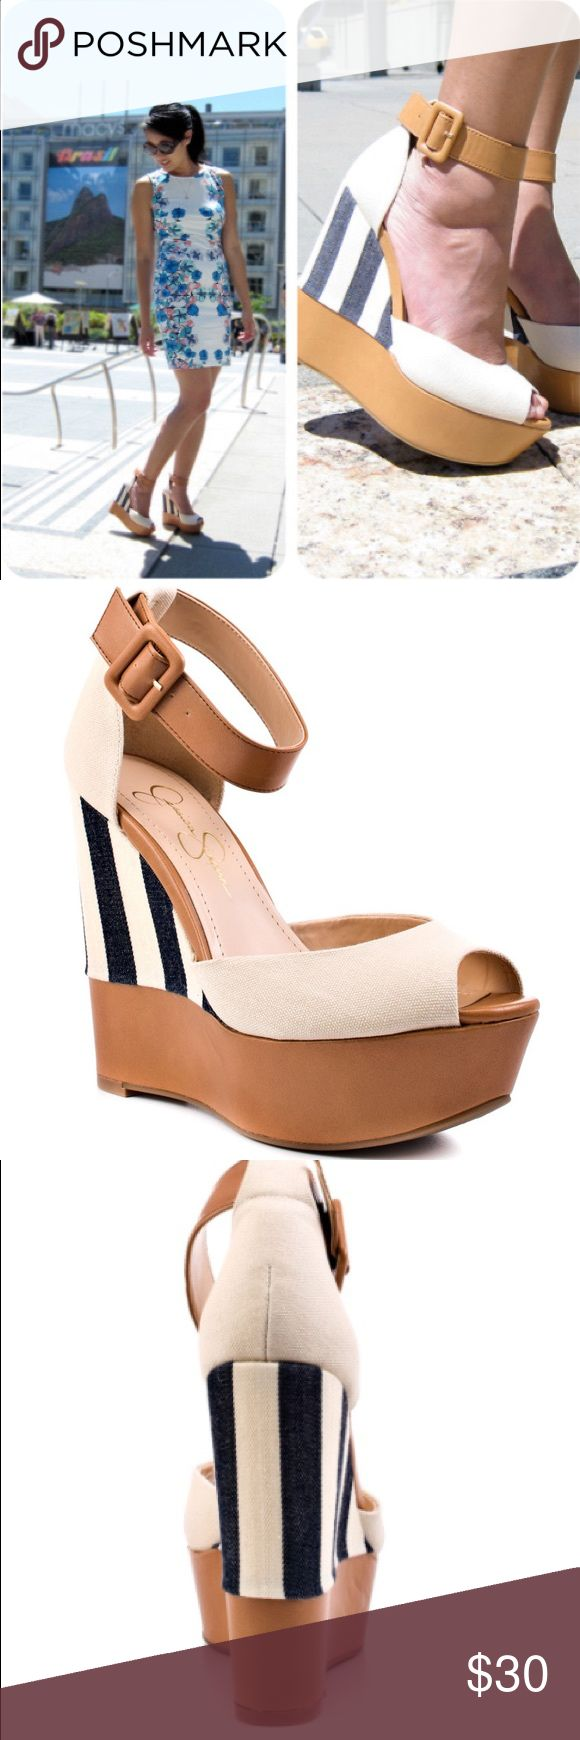 Jessica Simpson Cocoa tan wedges Gorgeous pair of tan with navy accents wedges perfect for summer! Adjustable strap hug your ankle for perfect fit! 5 1/4 inch wedge and 1 1/2 inch platform. Jessica Simpson Shoes Wedges